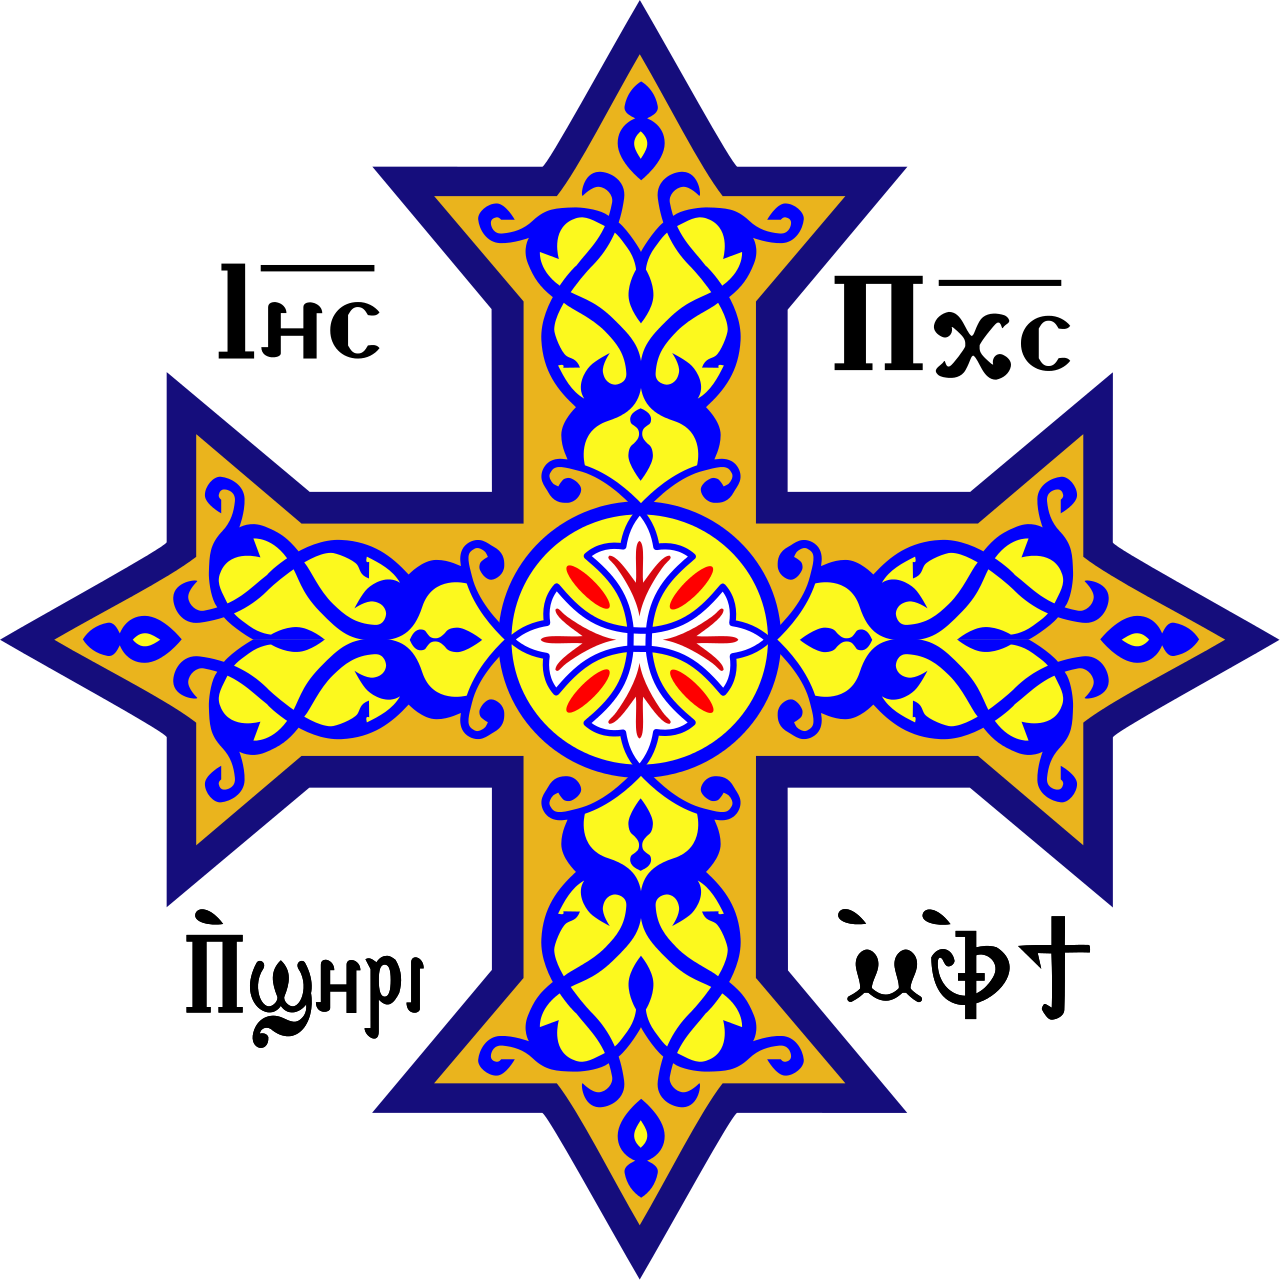 Contemporary Design Used By The Coptic Catholic Church1 History